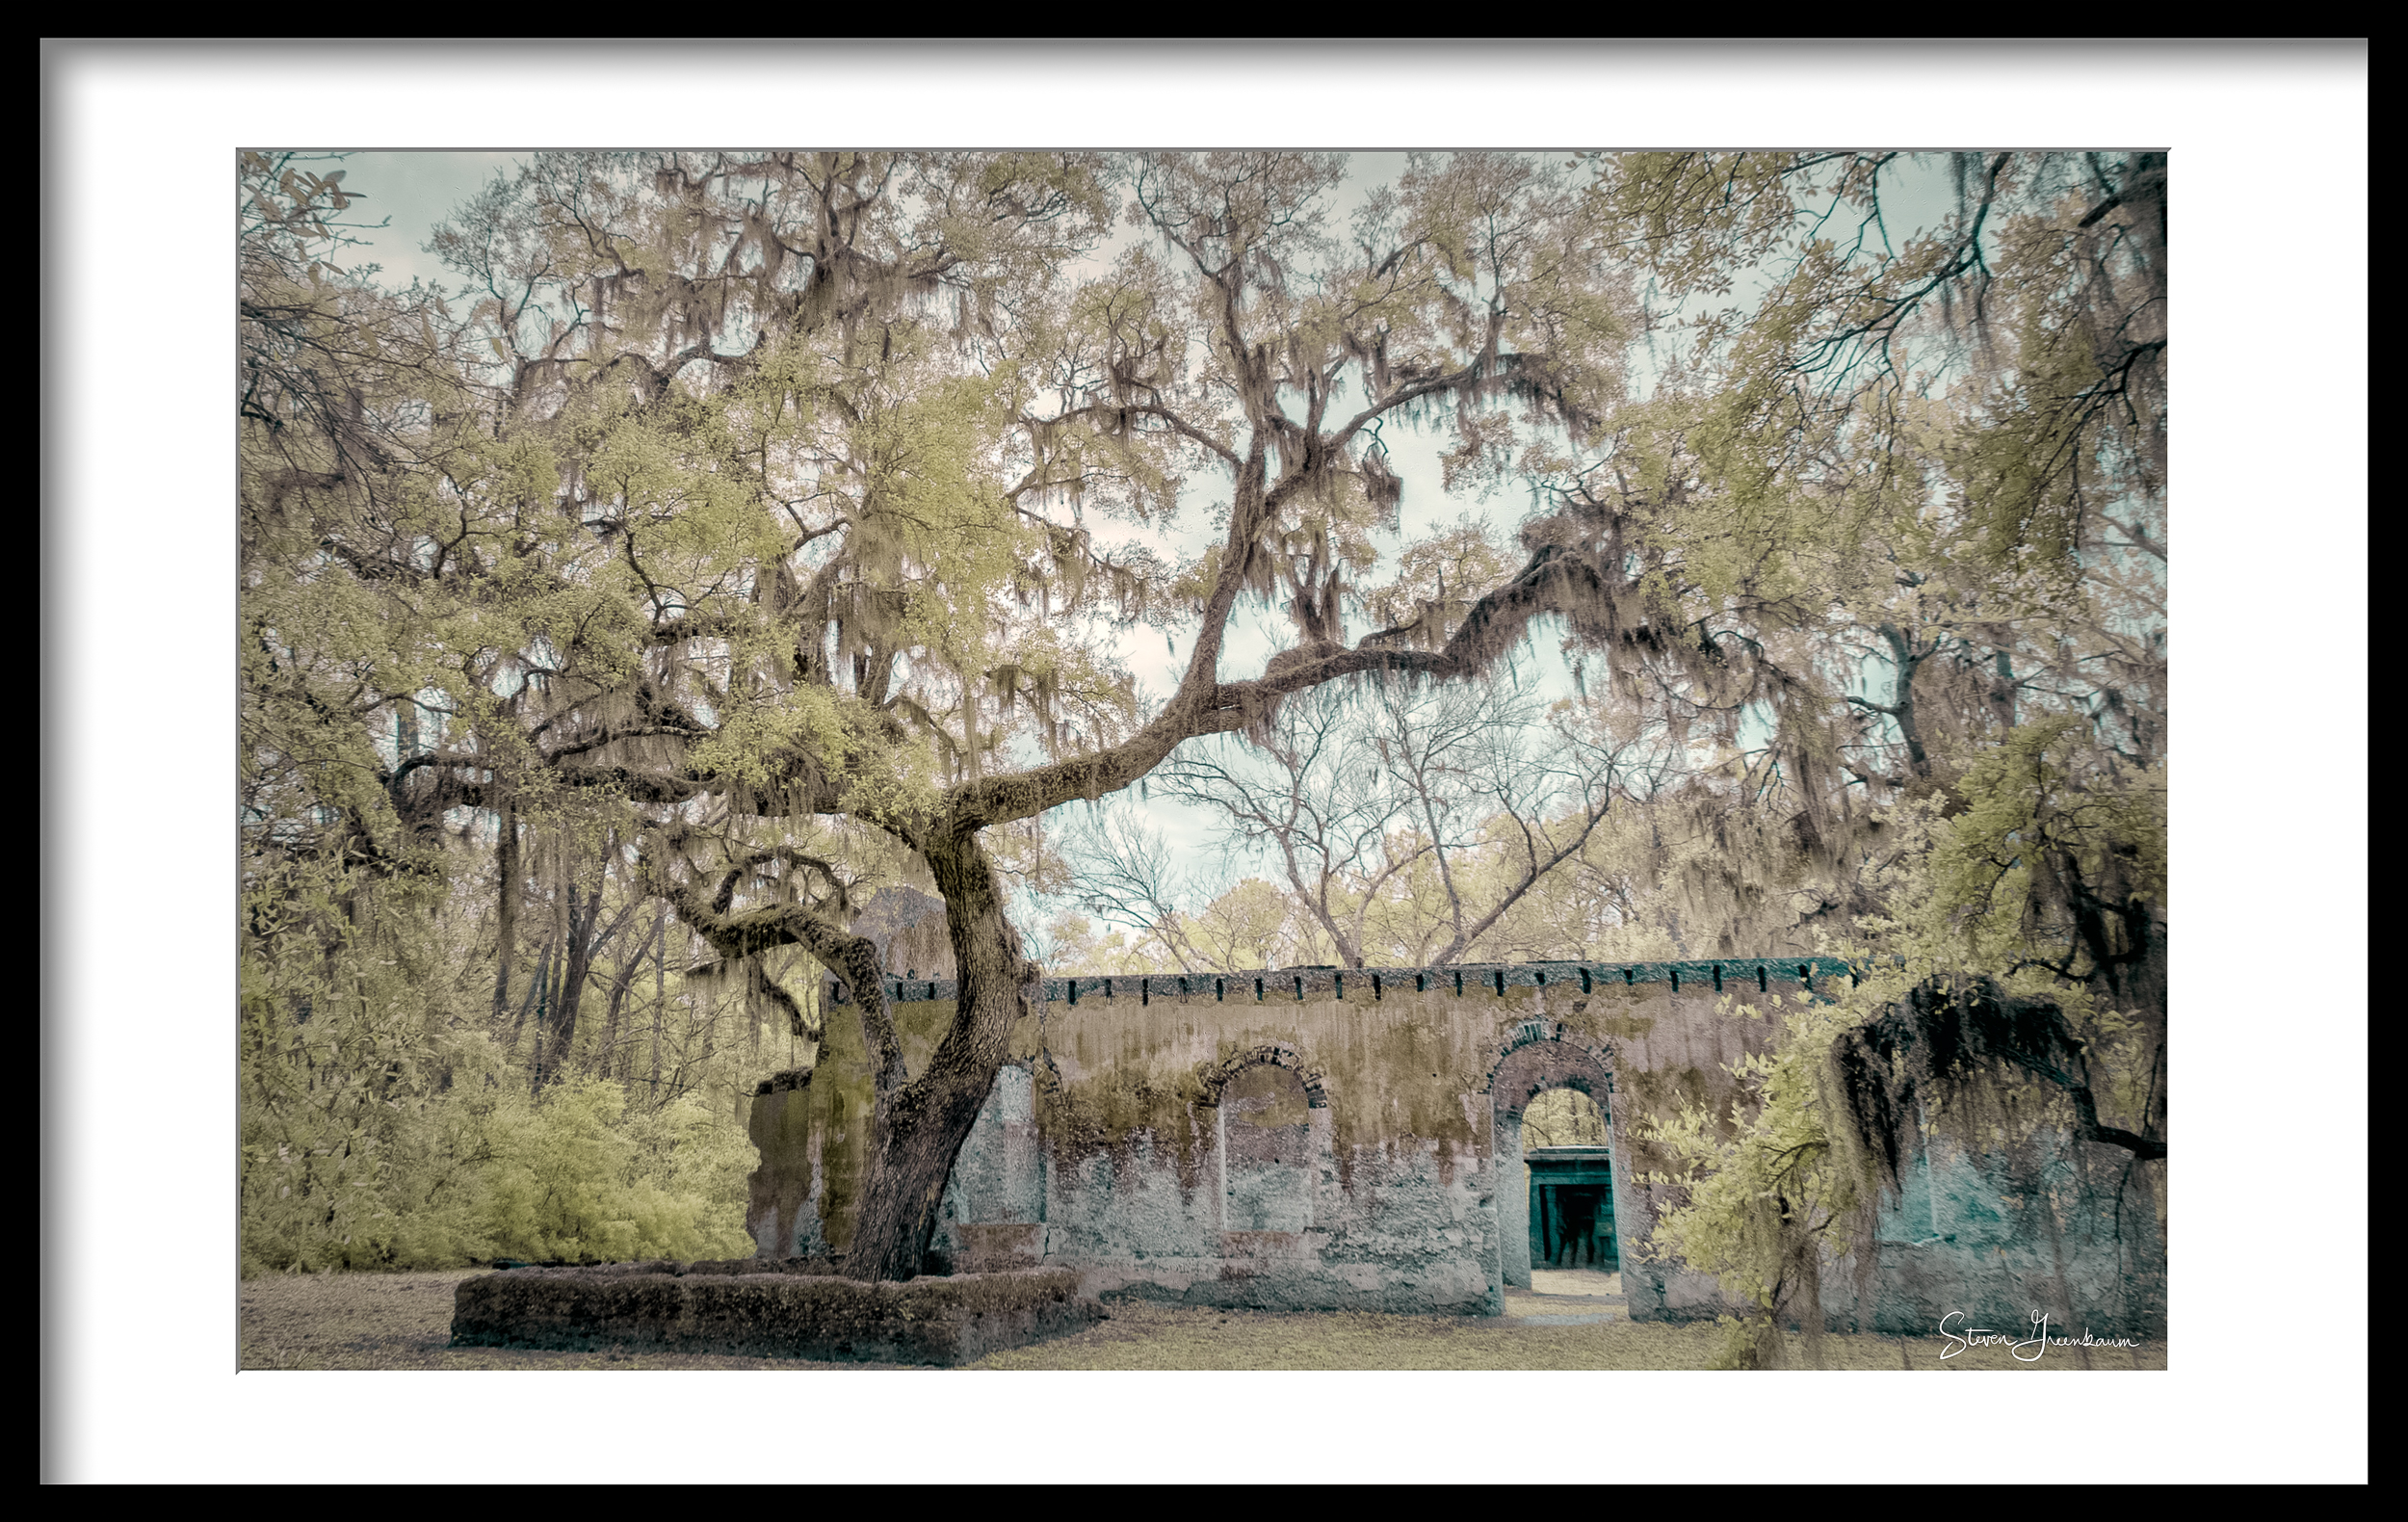 Live Oak at St. Helena Chapel Of Ease, South Carolina,2017